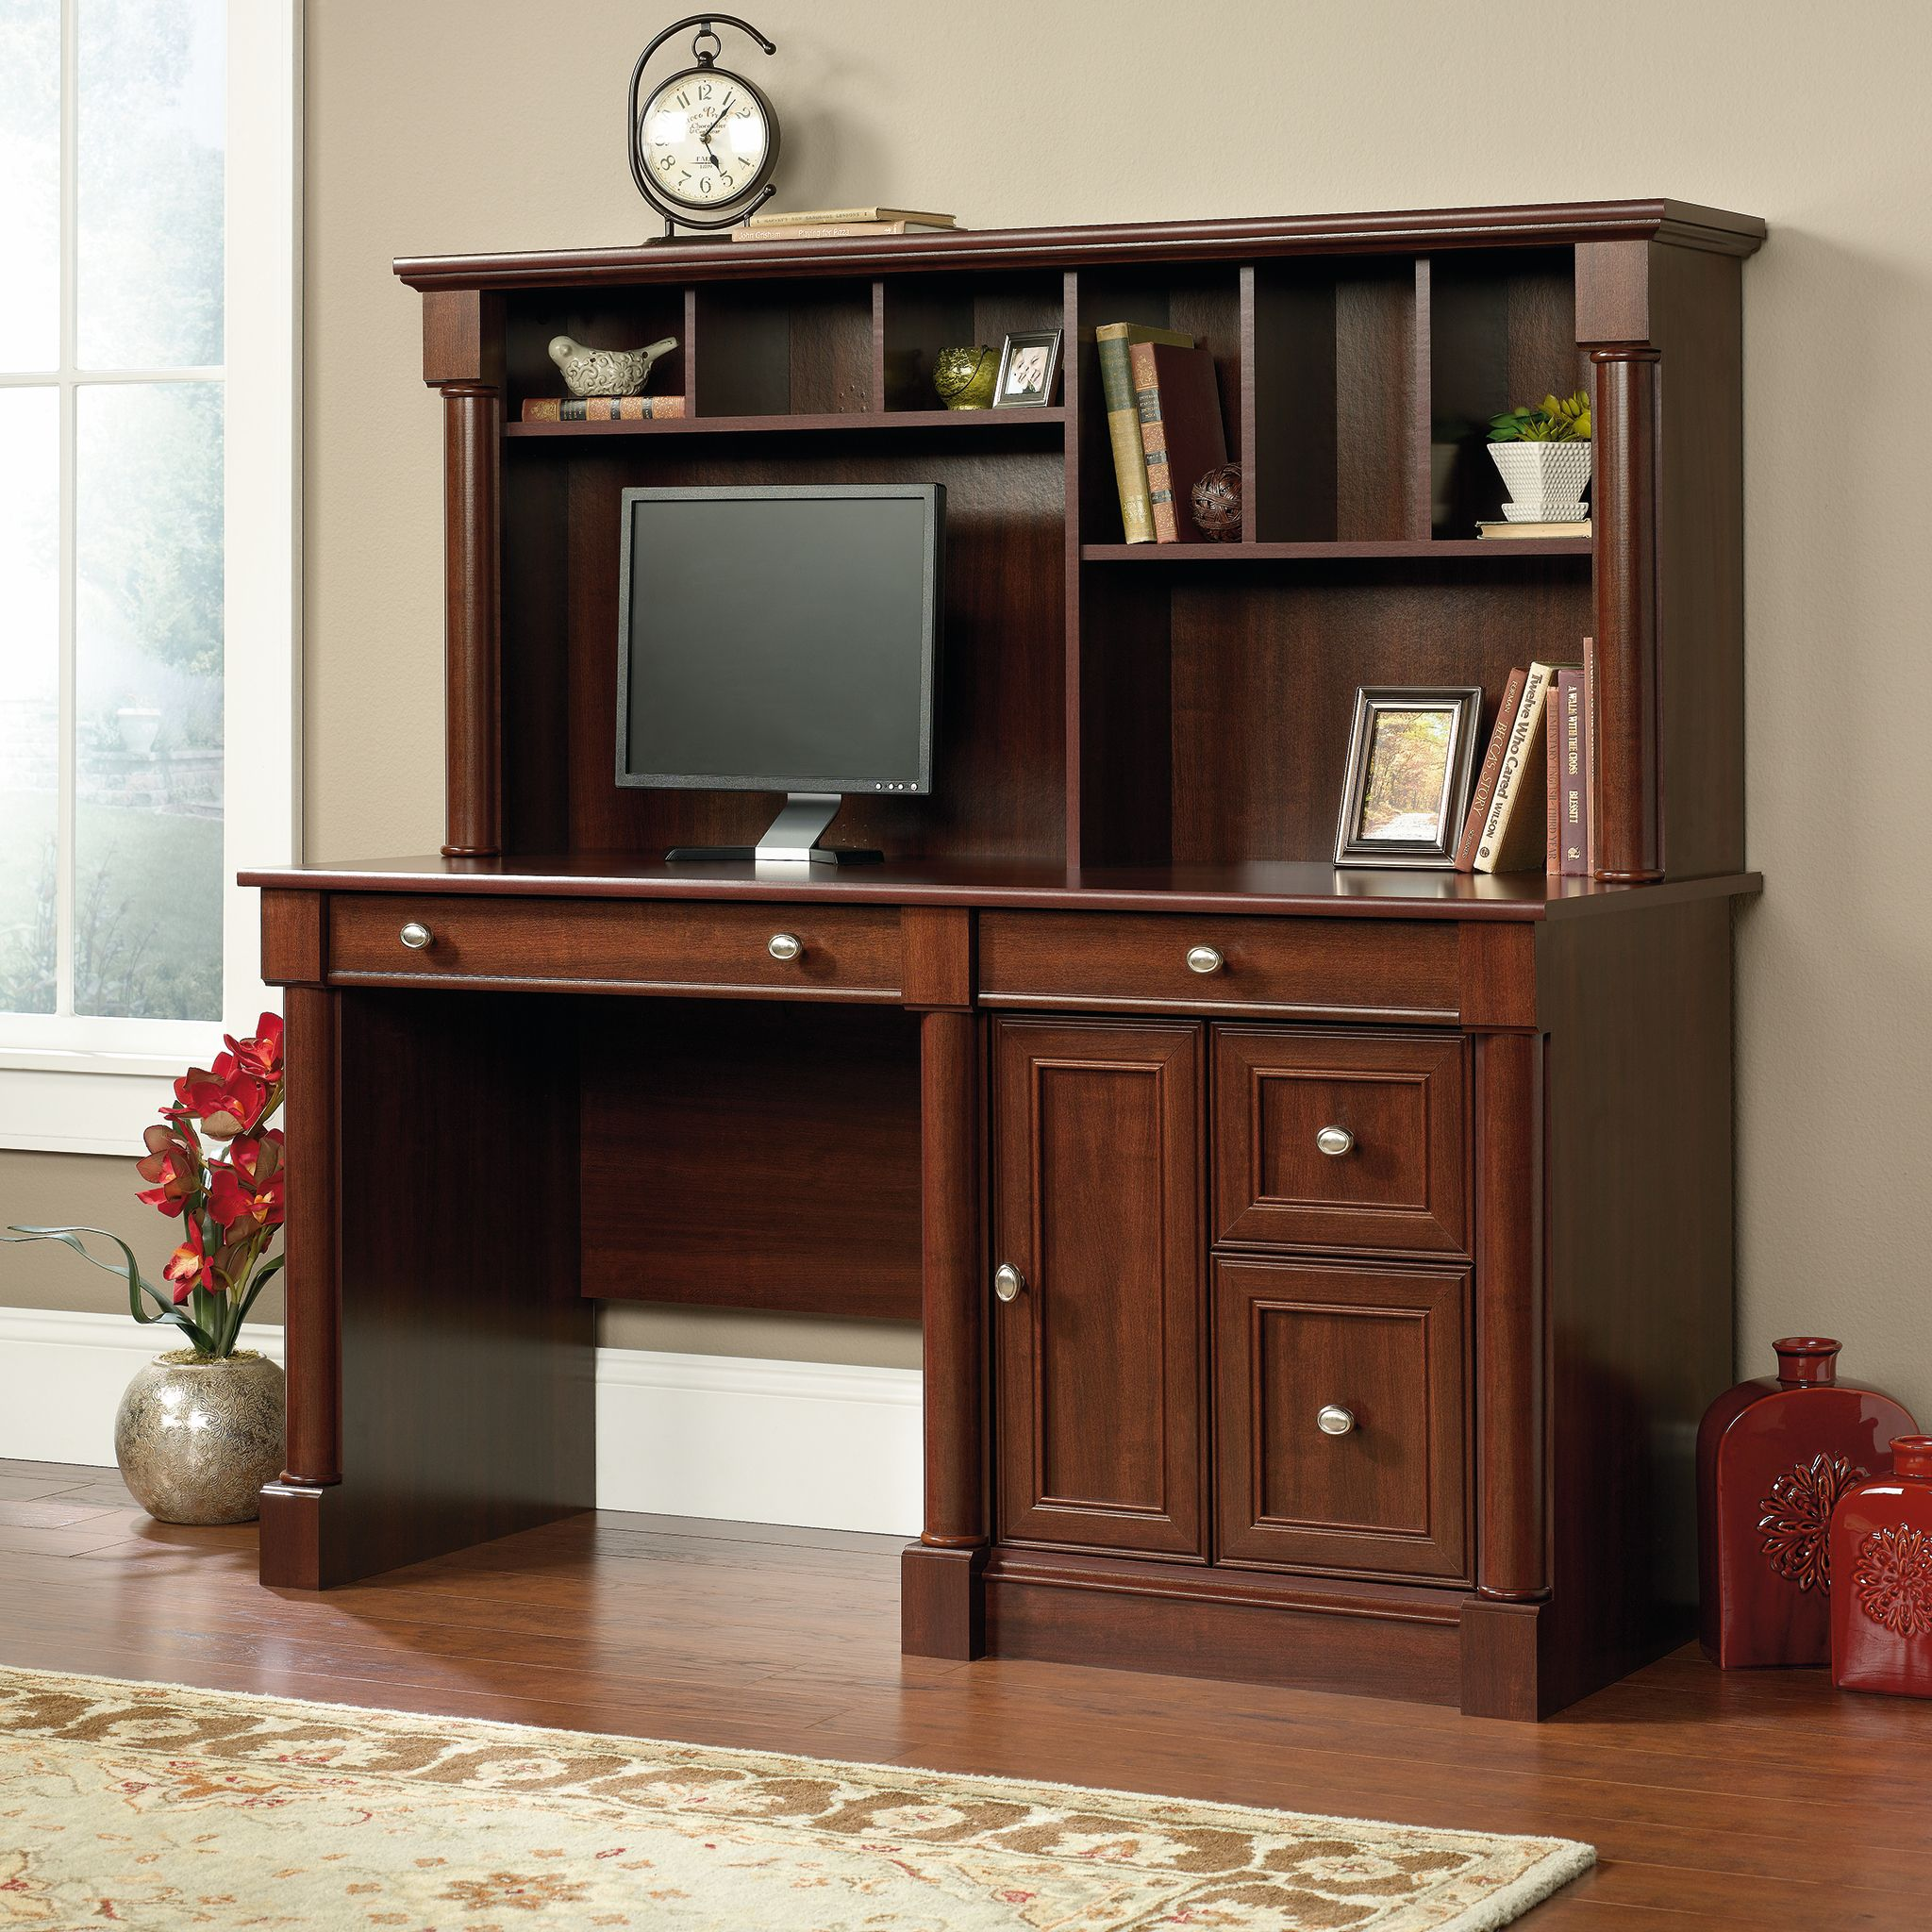 Sauder Parklane Nightstand Multiple Finishes AAA Discounts and